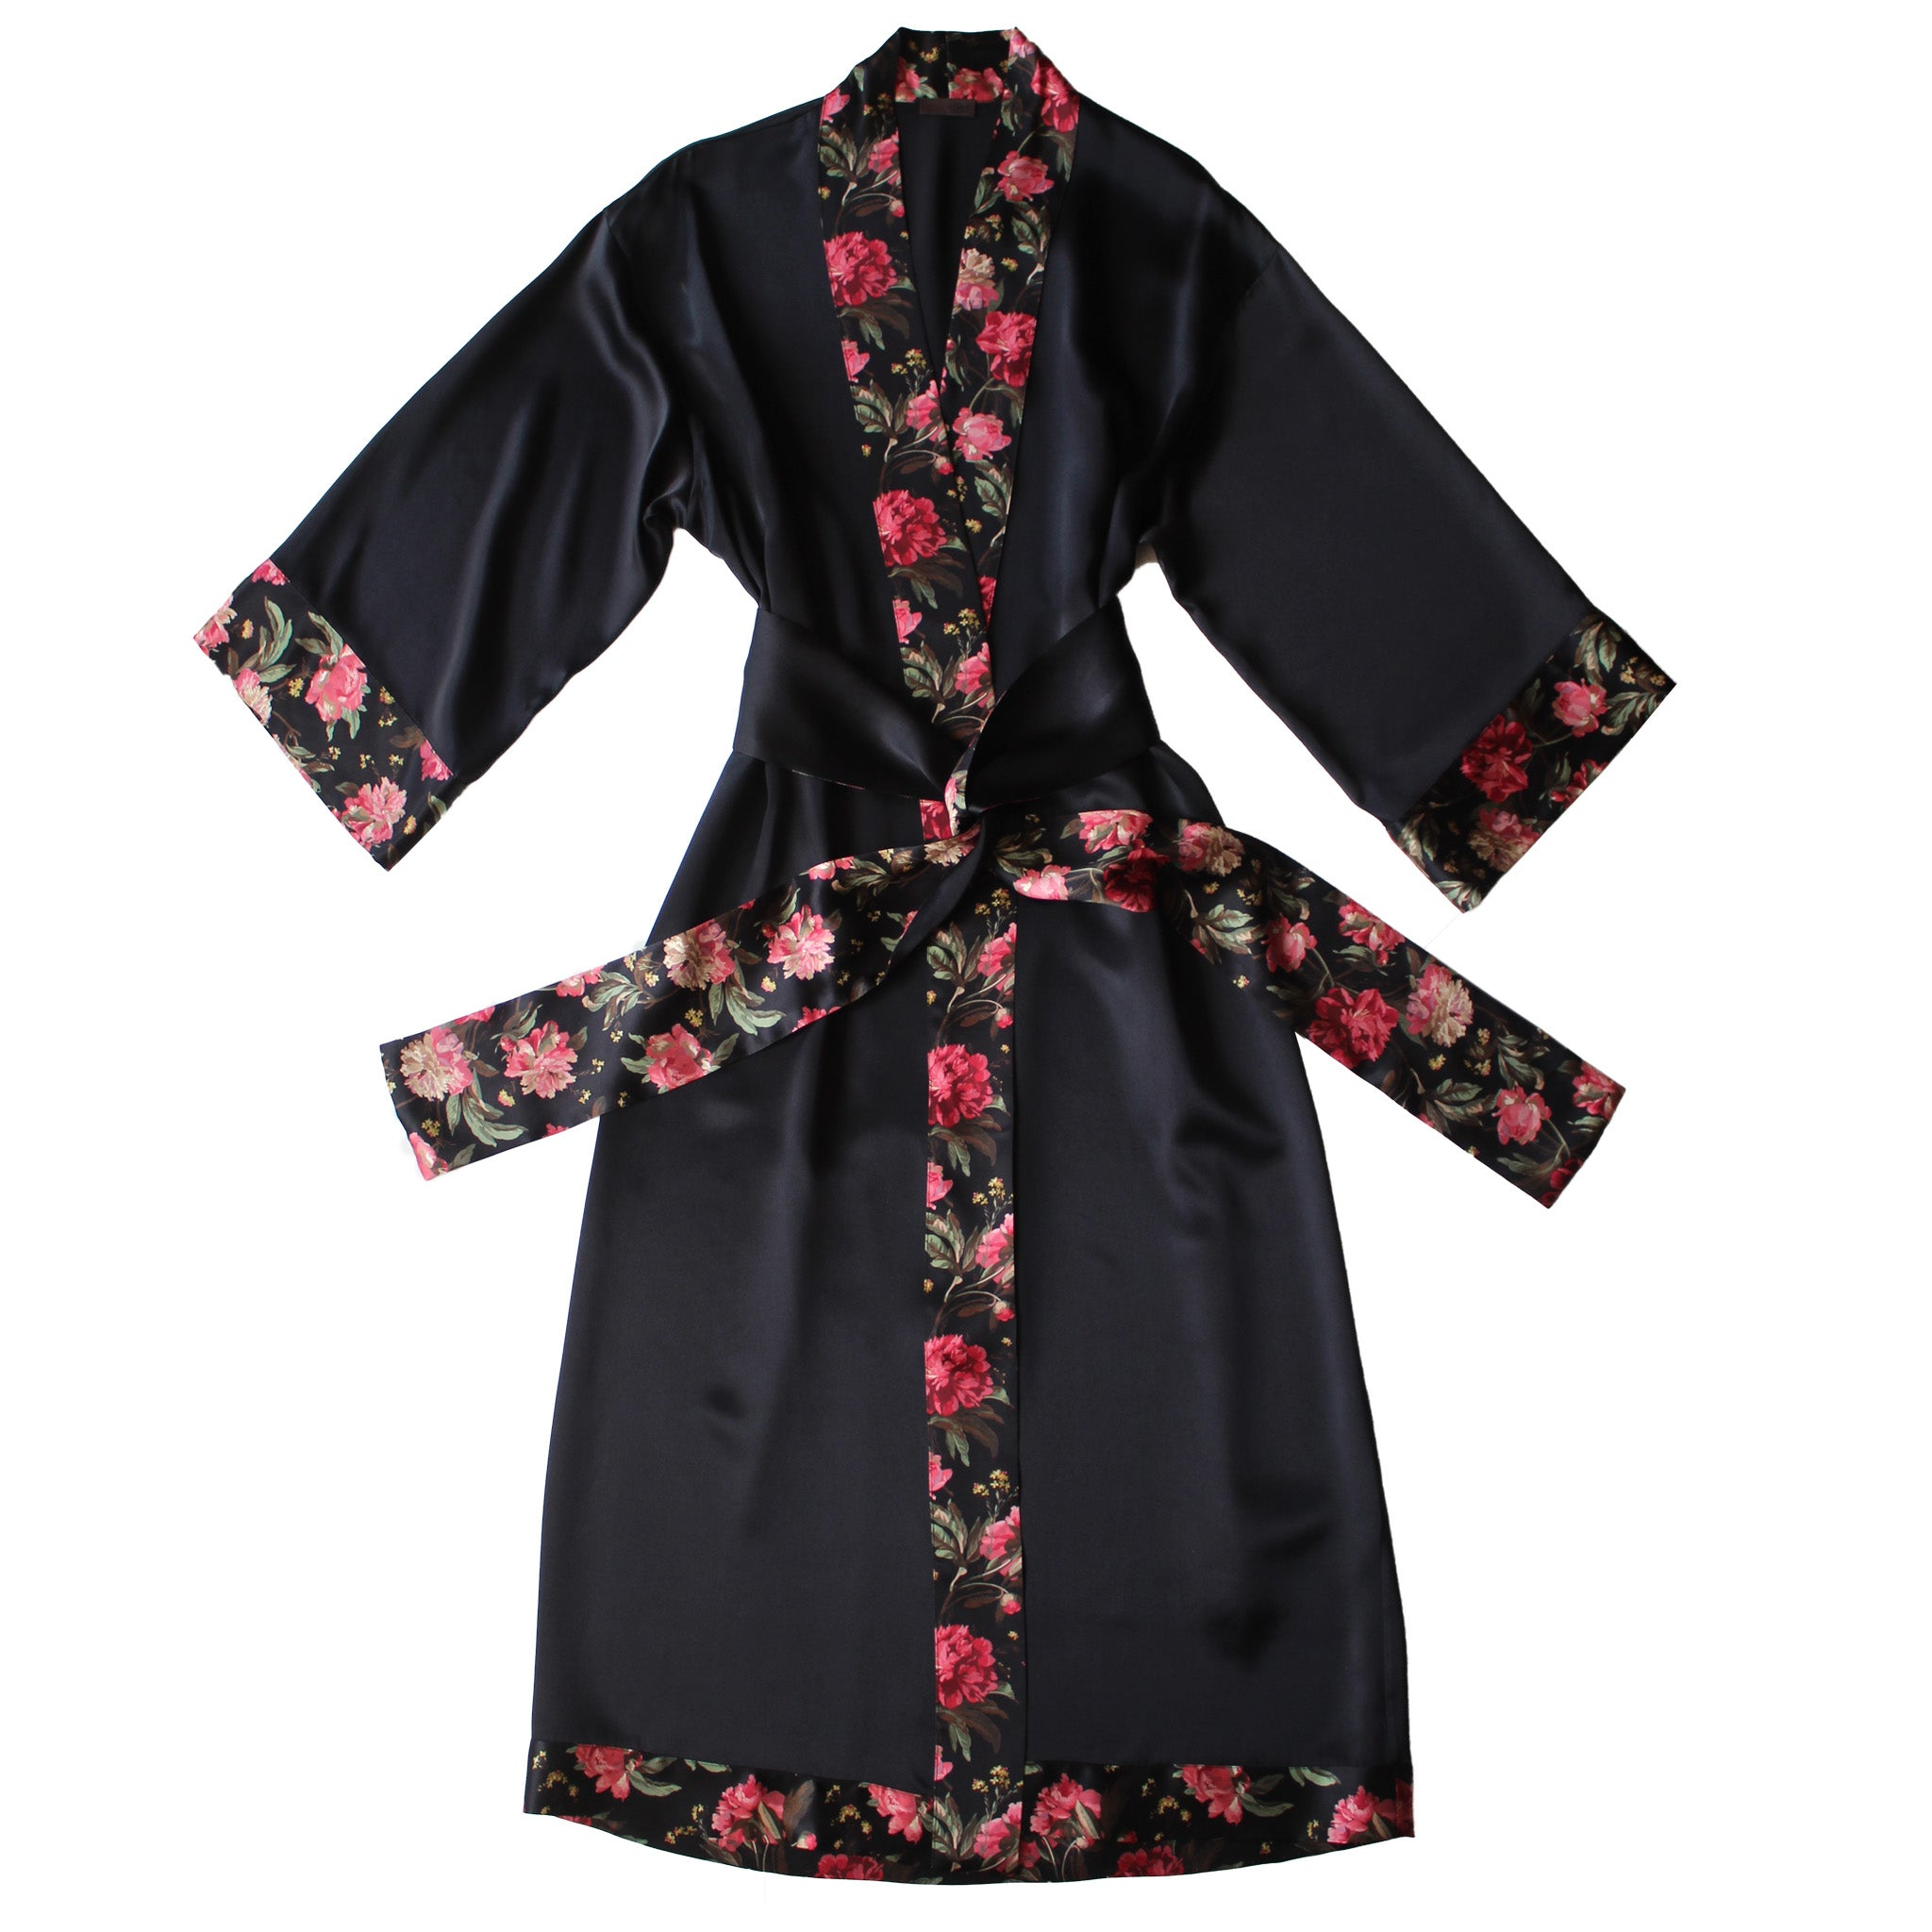 Asteria Kimono Robe in Black Silk Charmeuse with Decadent Blooms Liberty Print Contrast Silk